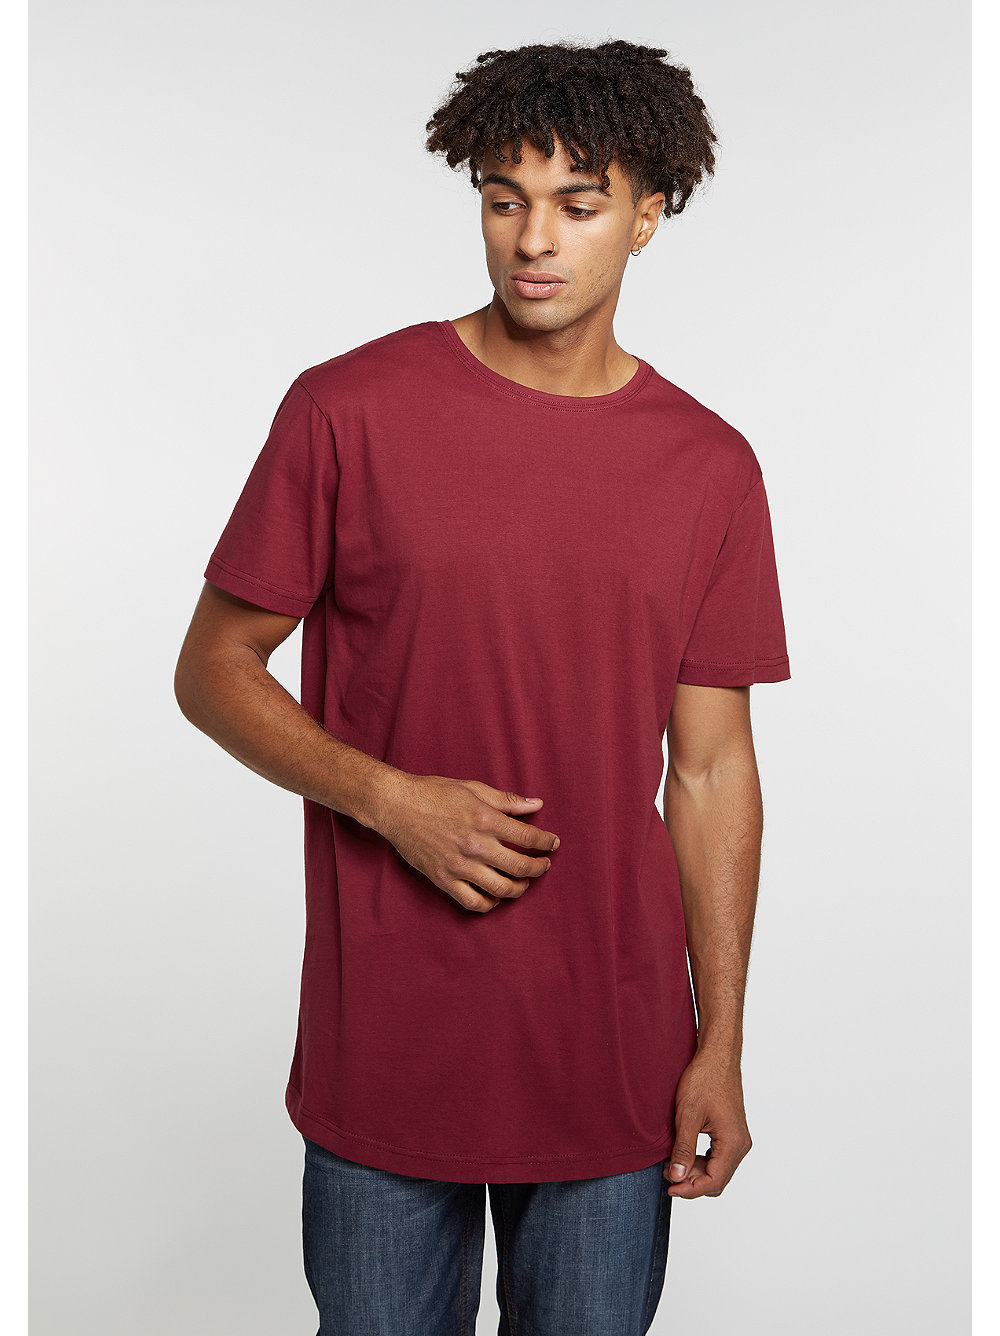 urban classics t shirt shaped long tee burgundy bei snipes. Black Bedroom Furniture Sets. Home Design Ideas